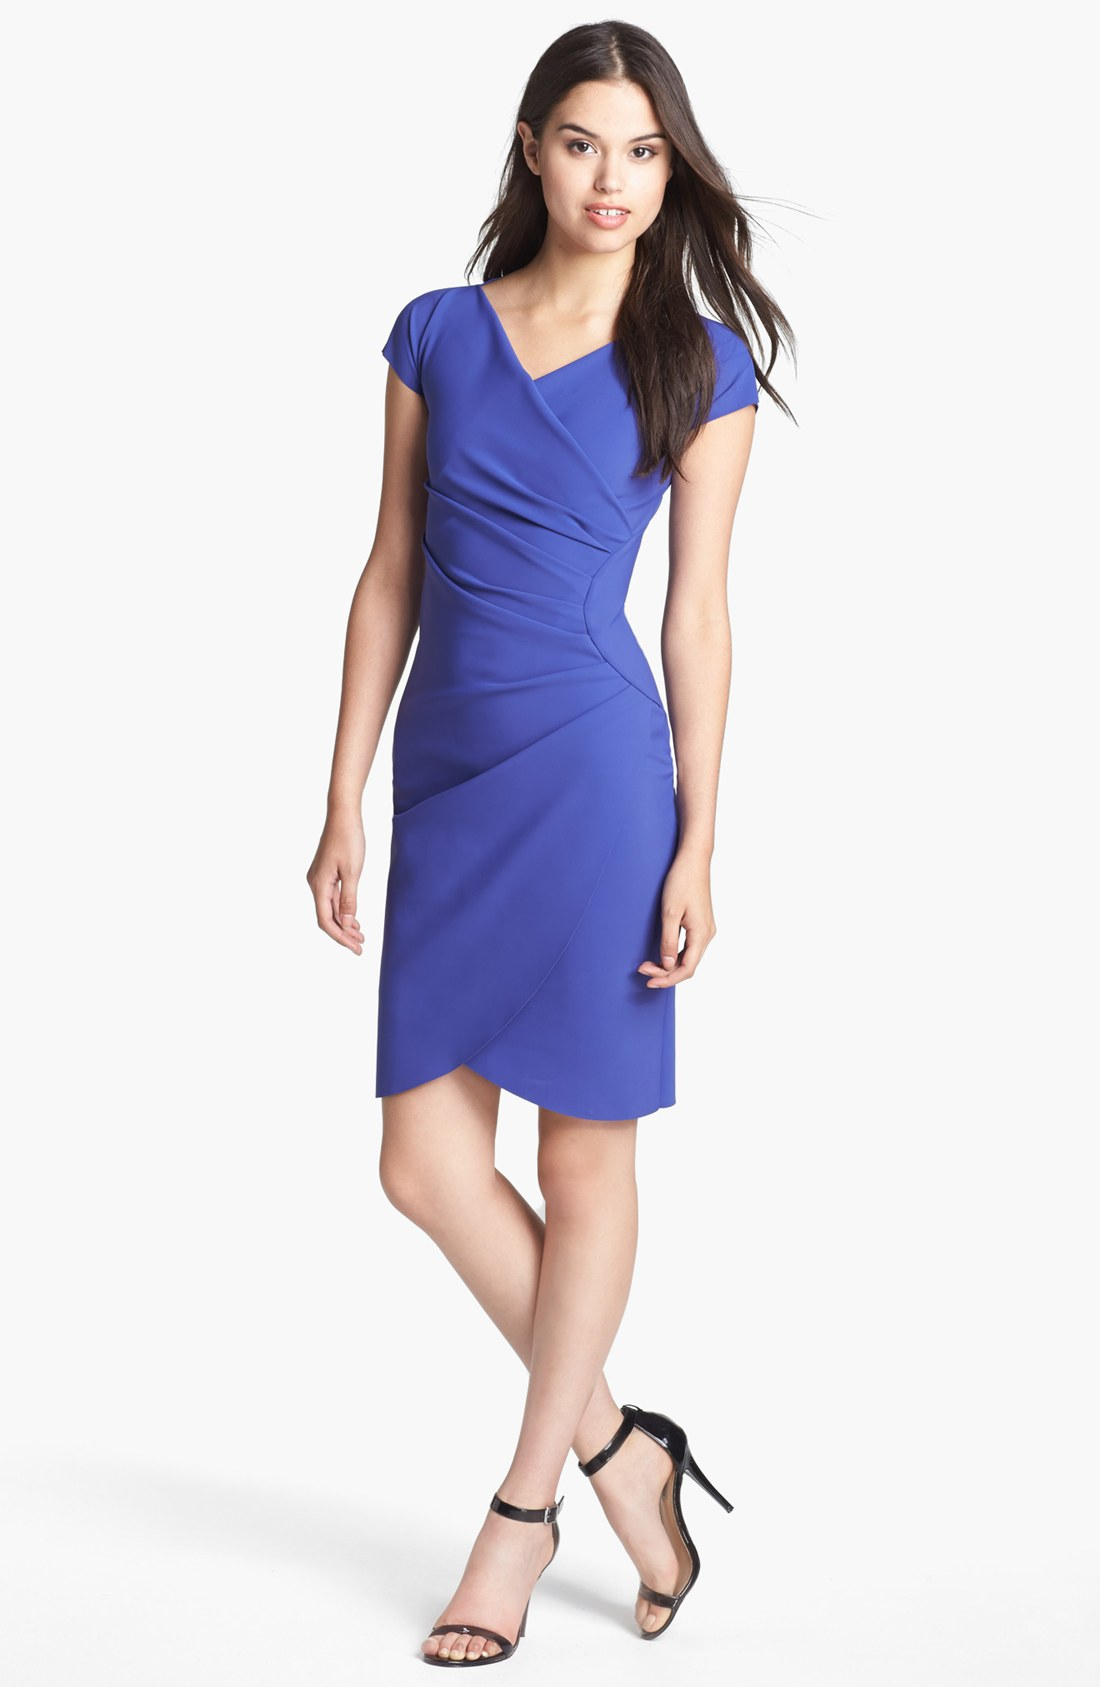 Chiara Boni The Most Popular Dress In America: La Petite Robe Di Chiara Boni Scuba Knit Sheath Dress In